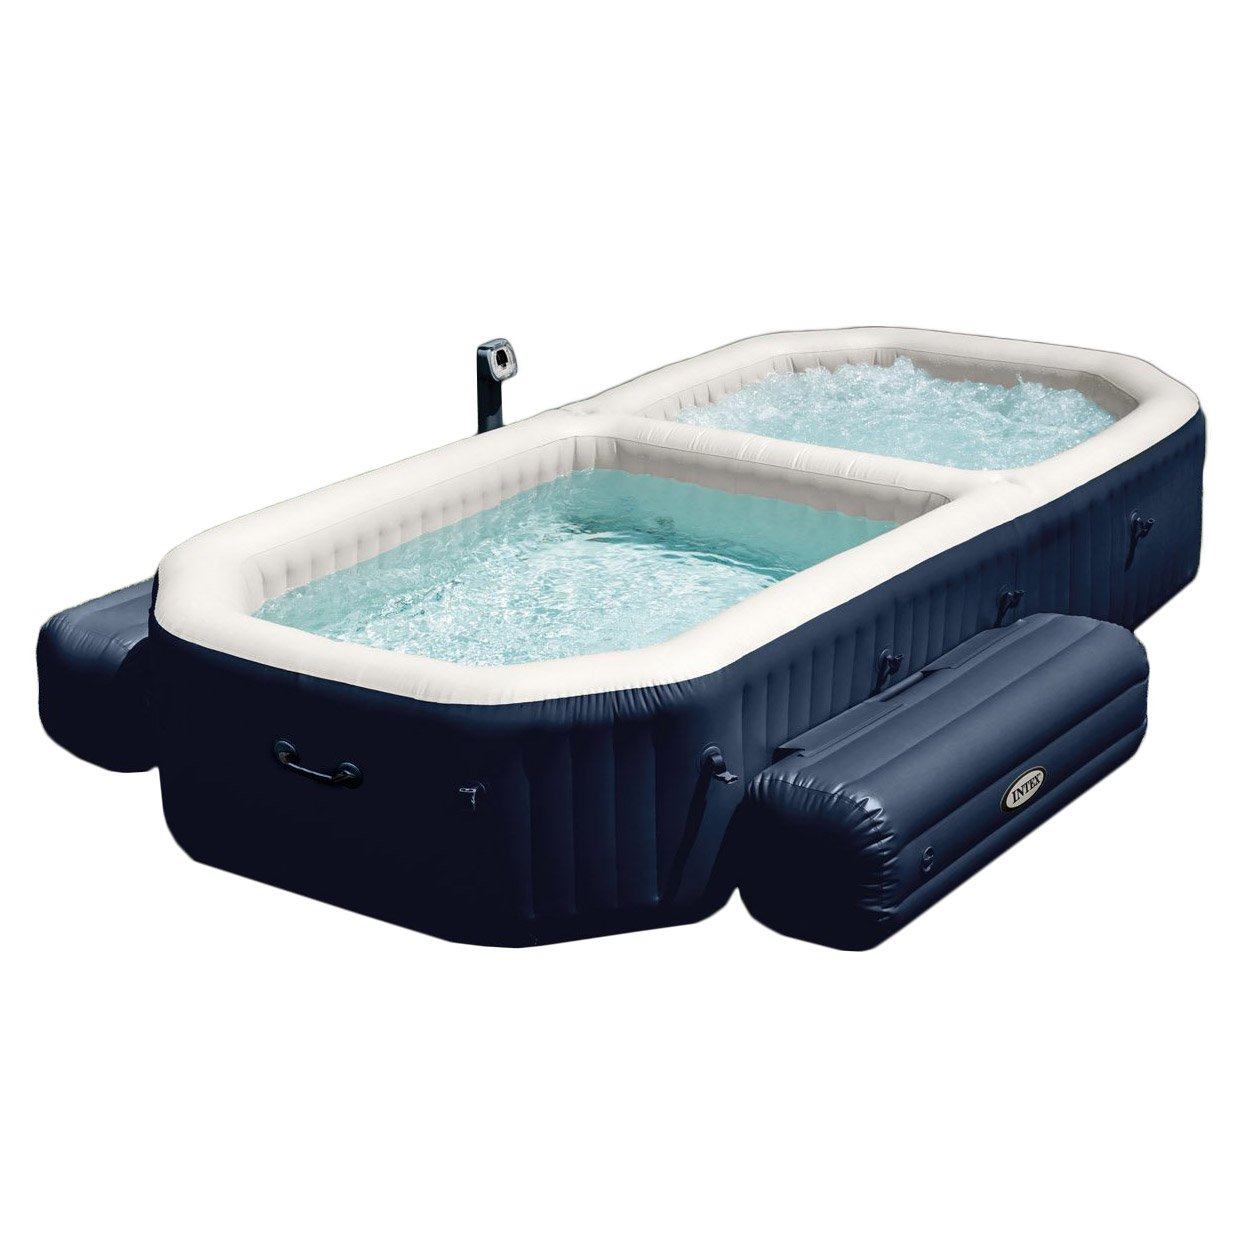 Jacuzzi Pool Dimensions Intex Purespa 4 Person Inflatable All In One Bubble Massage Hot